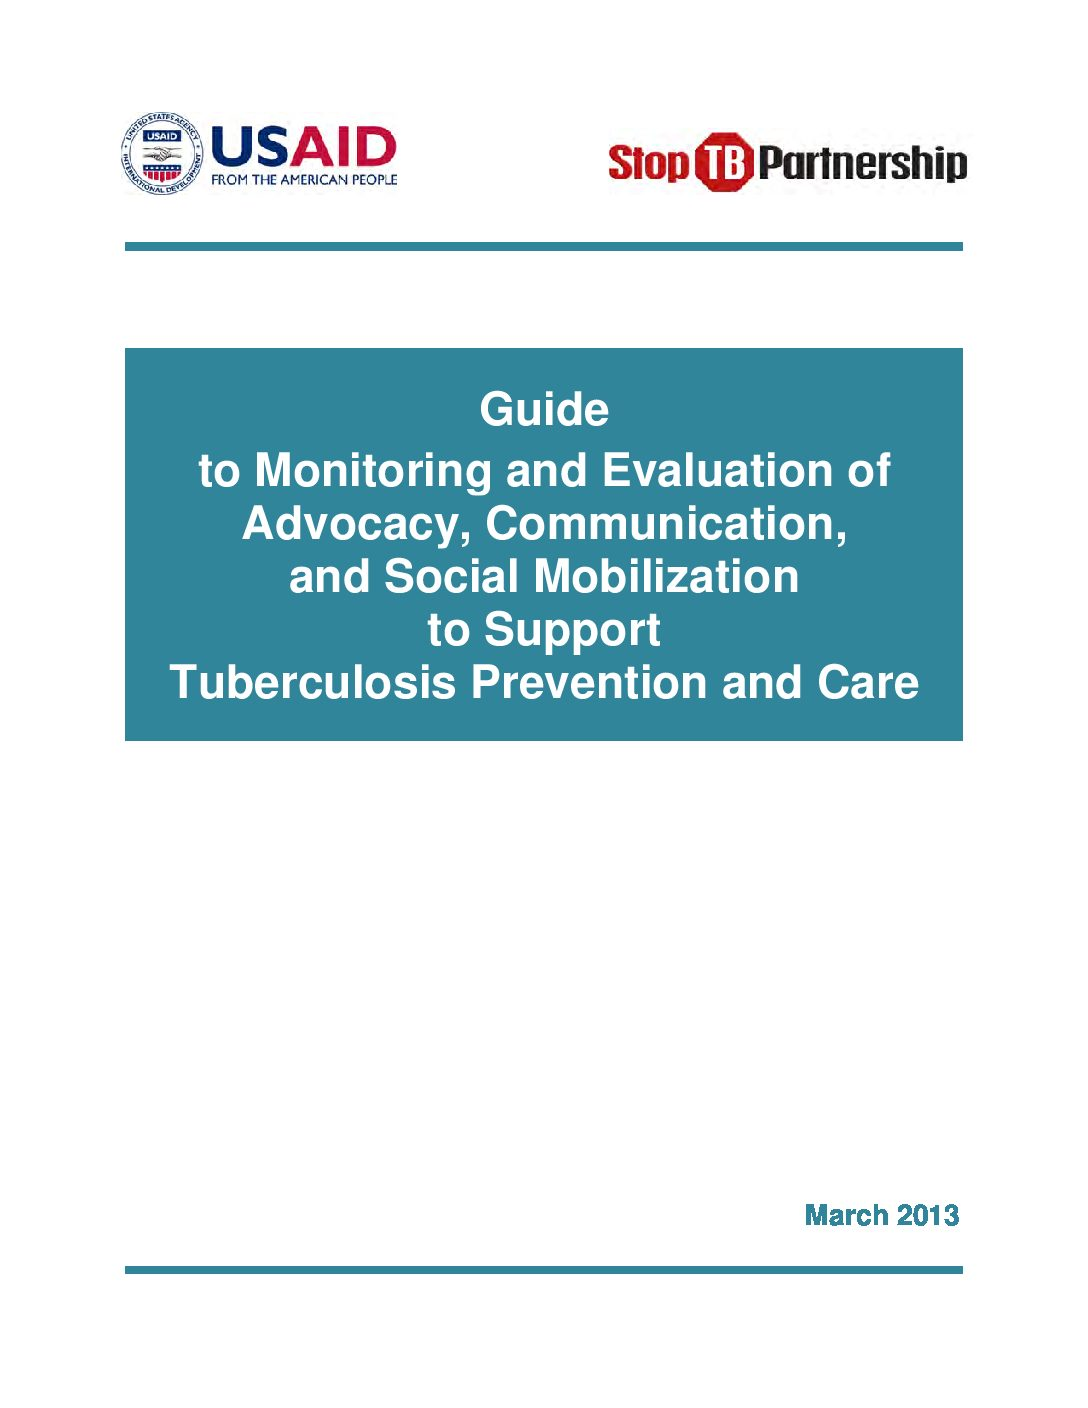 Guide to monitoring and evaluation of advocacy, communication, and social mobilization to support tuberculosis prevention and care.